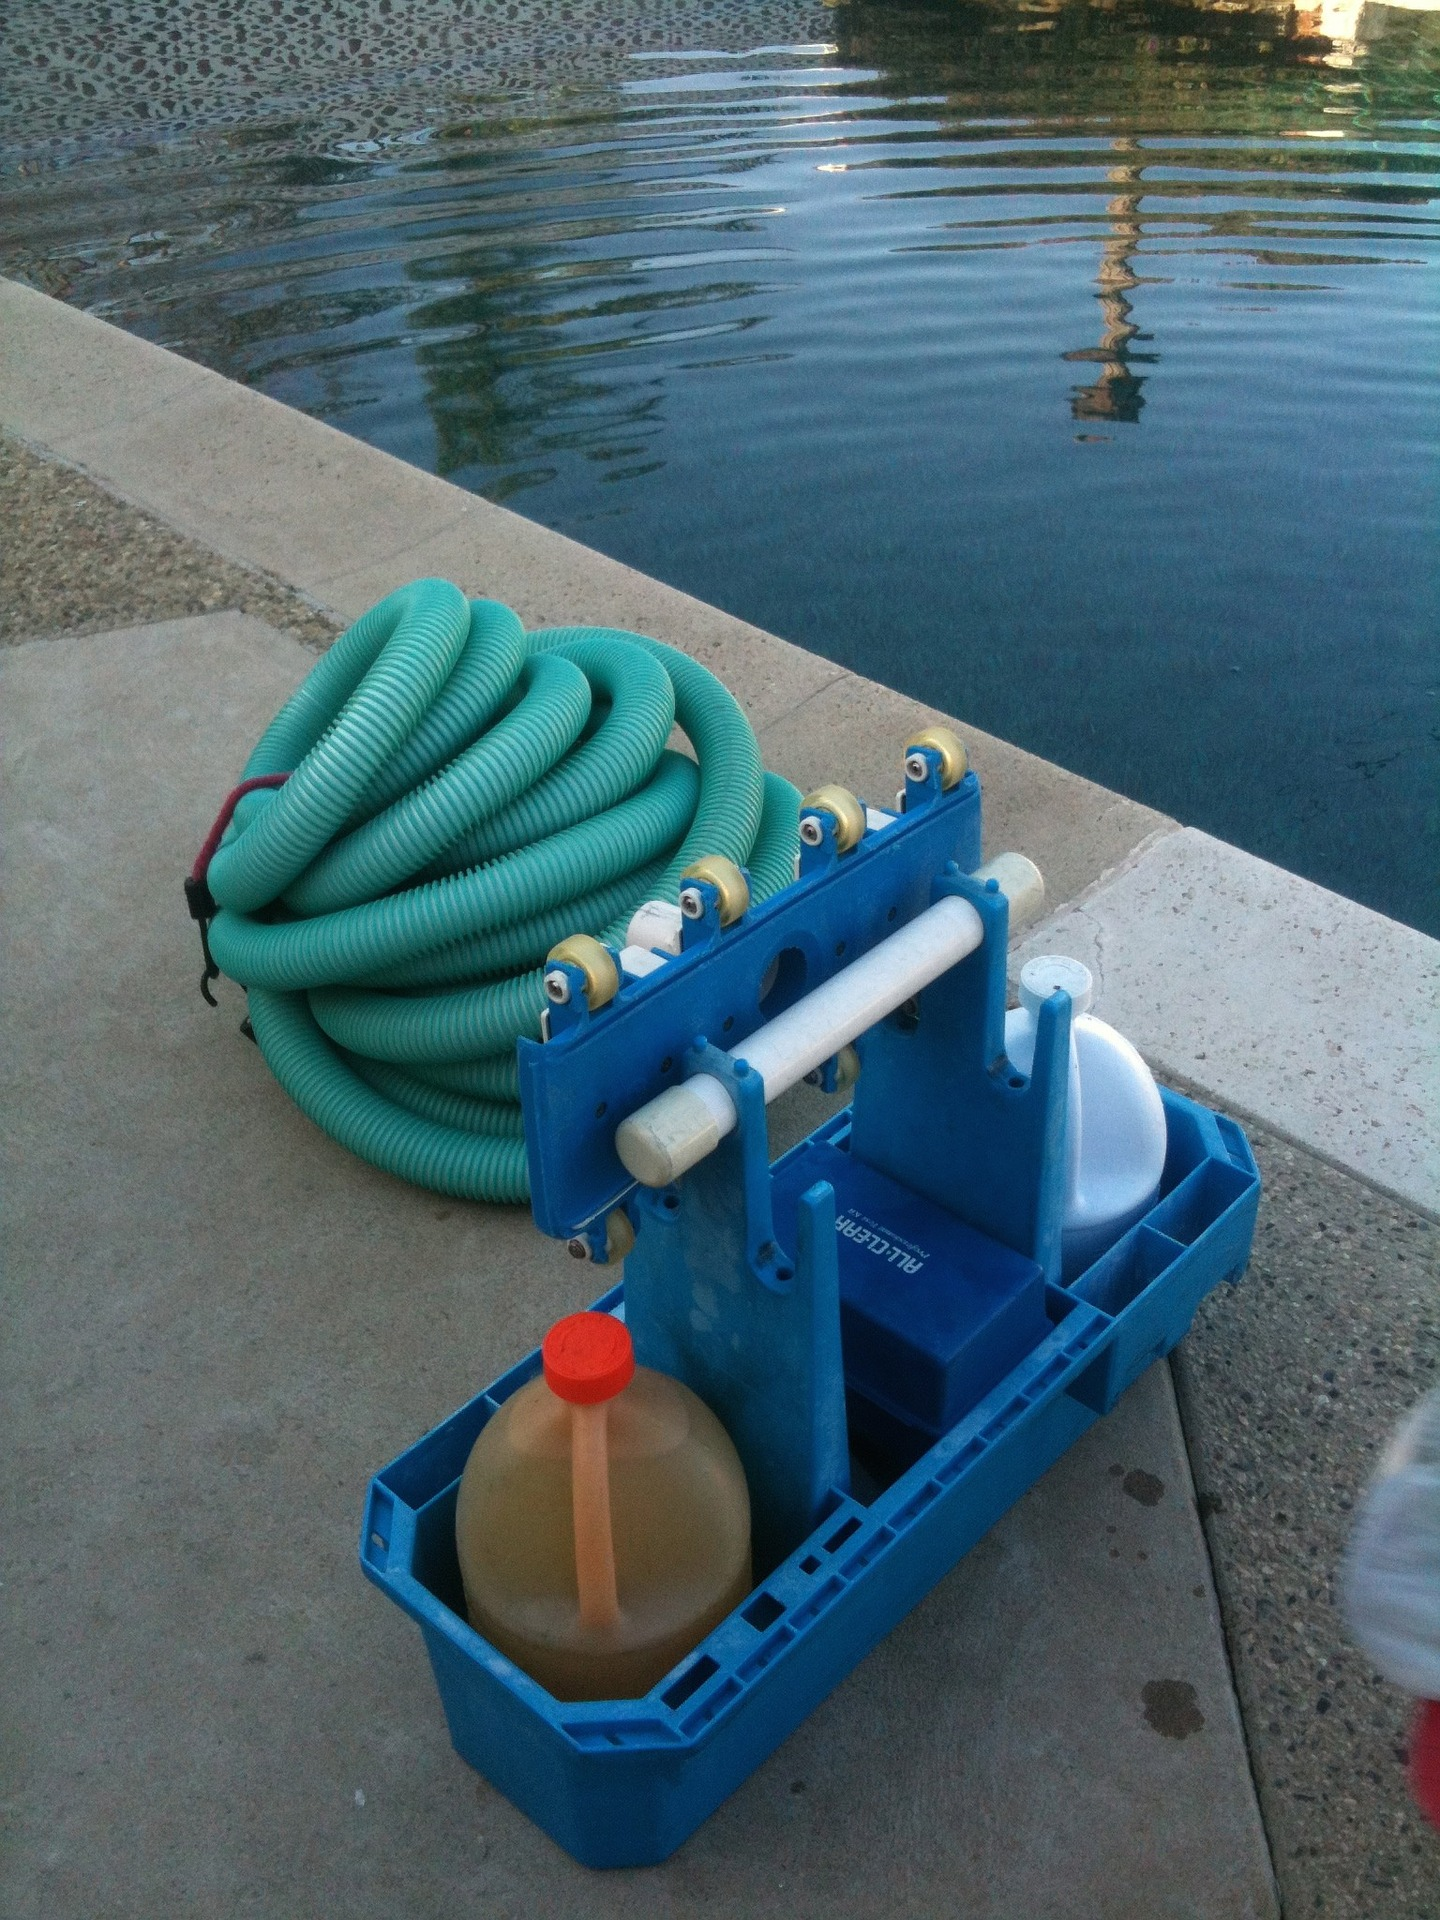 pool cleaning 330406 1920